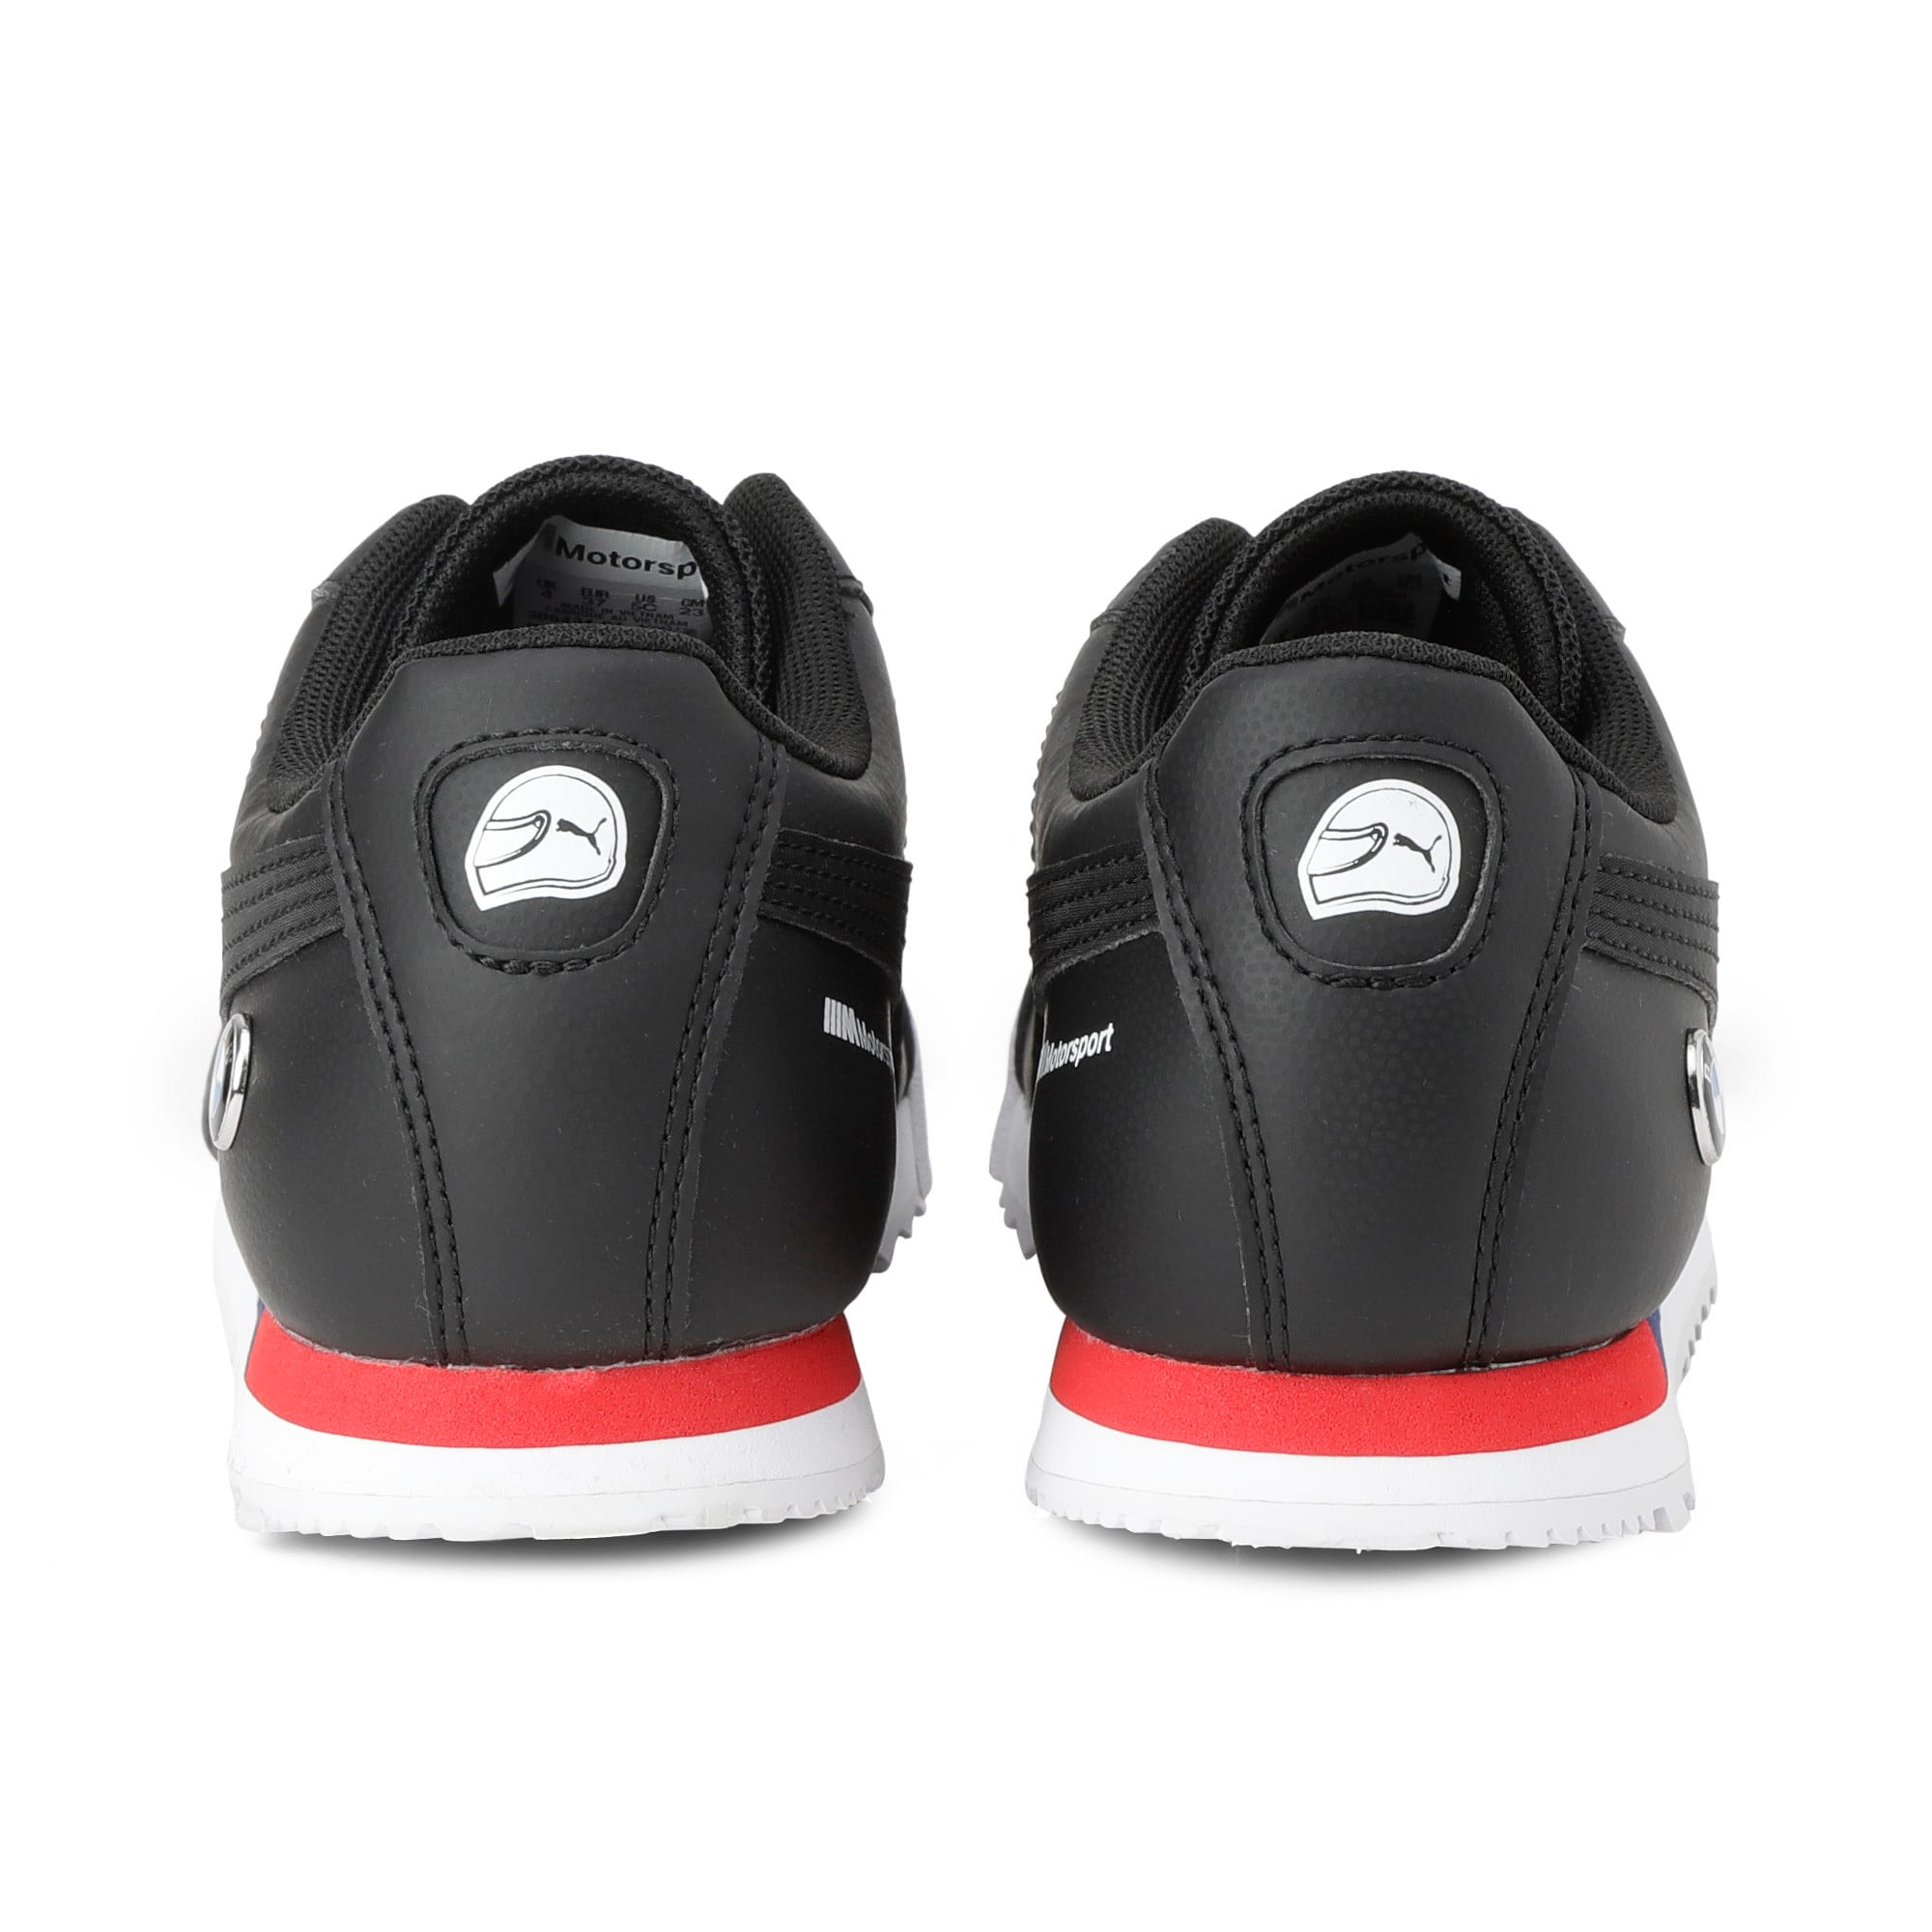 Thumbnail 3 of BMW Motorsport Roma Youth Trainers, Puma Black-Puma Black, medium-IND